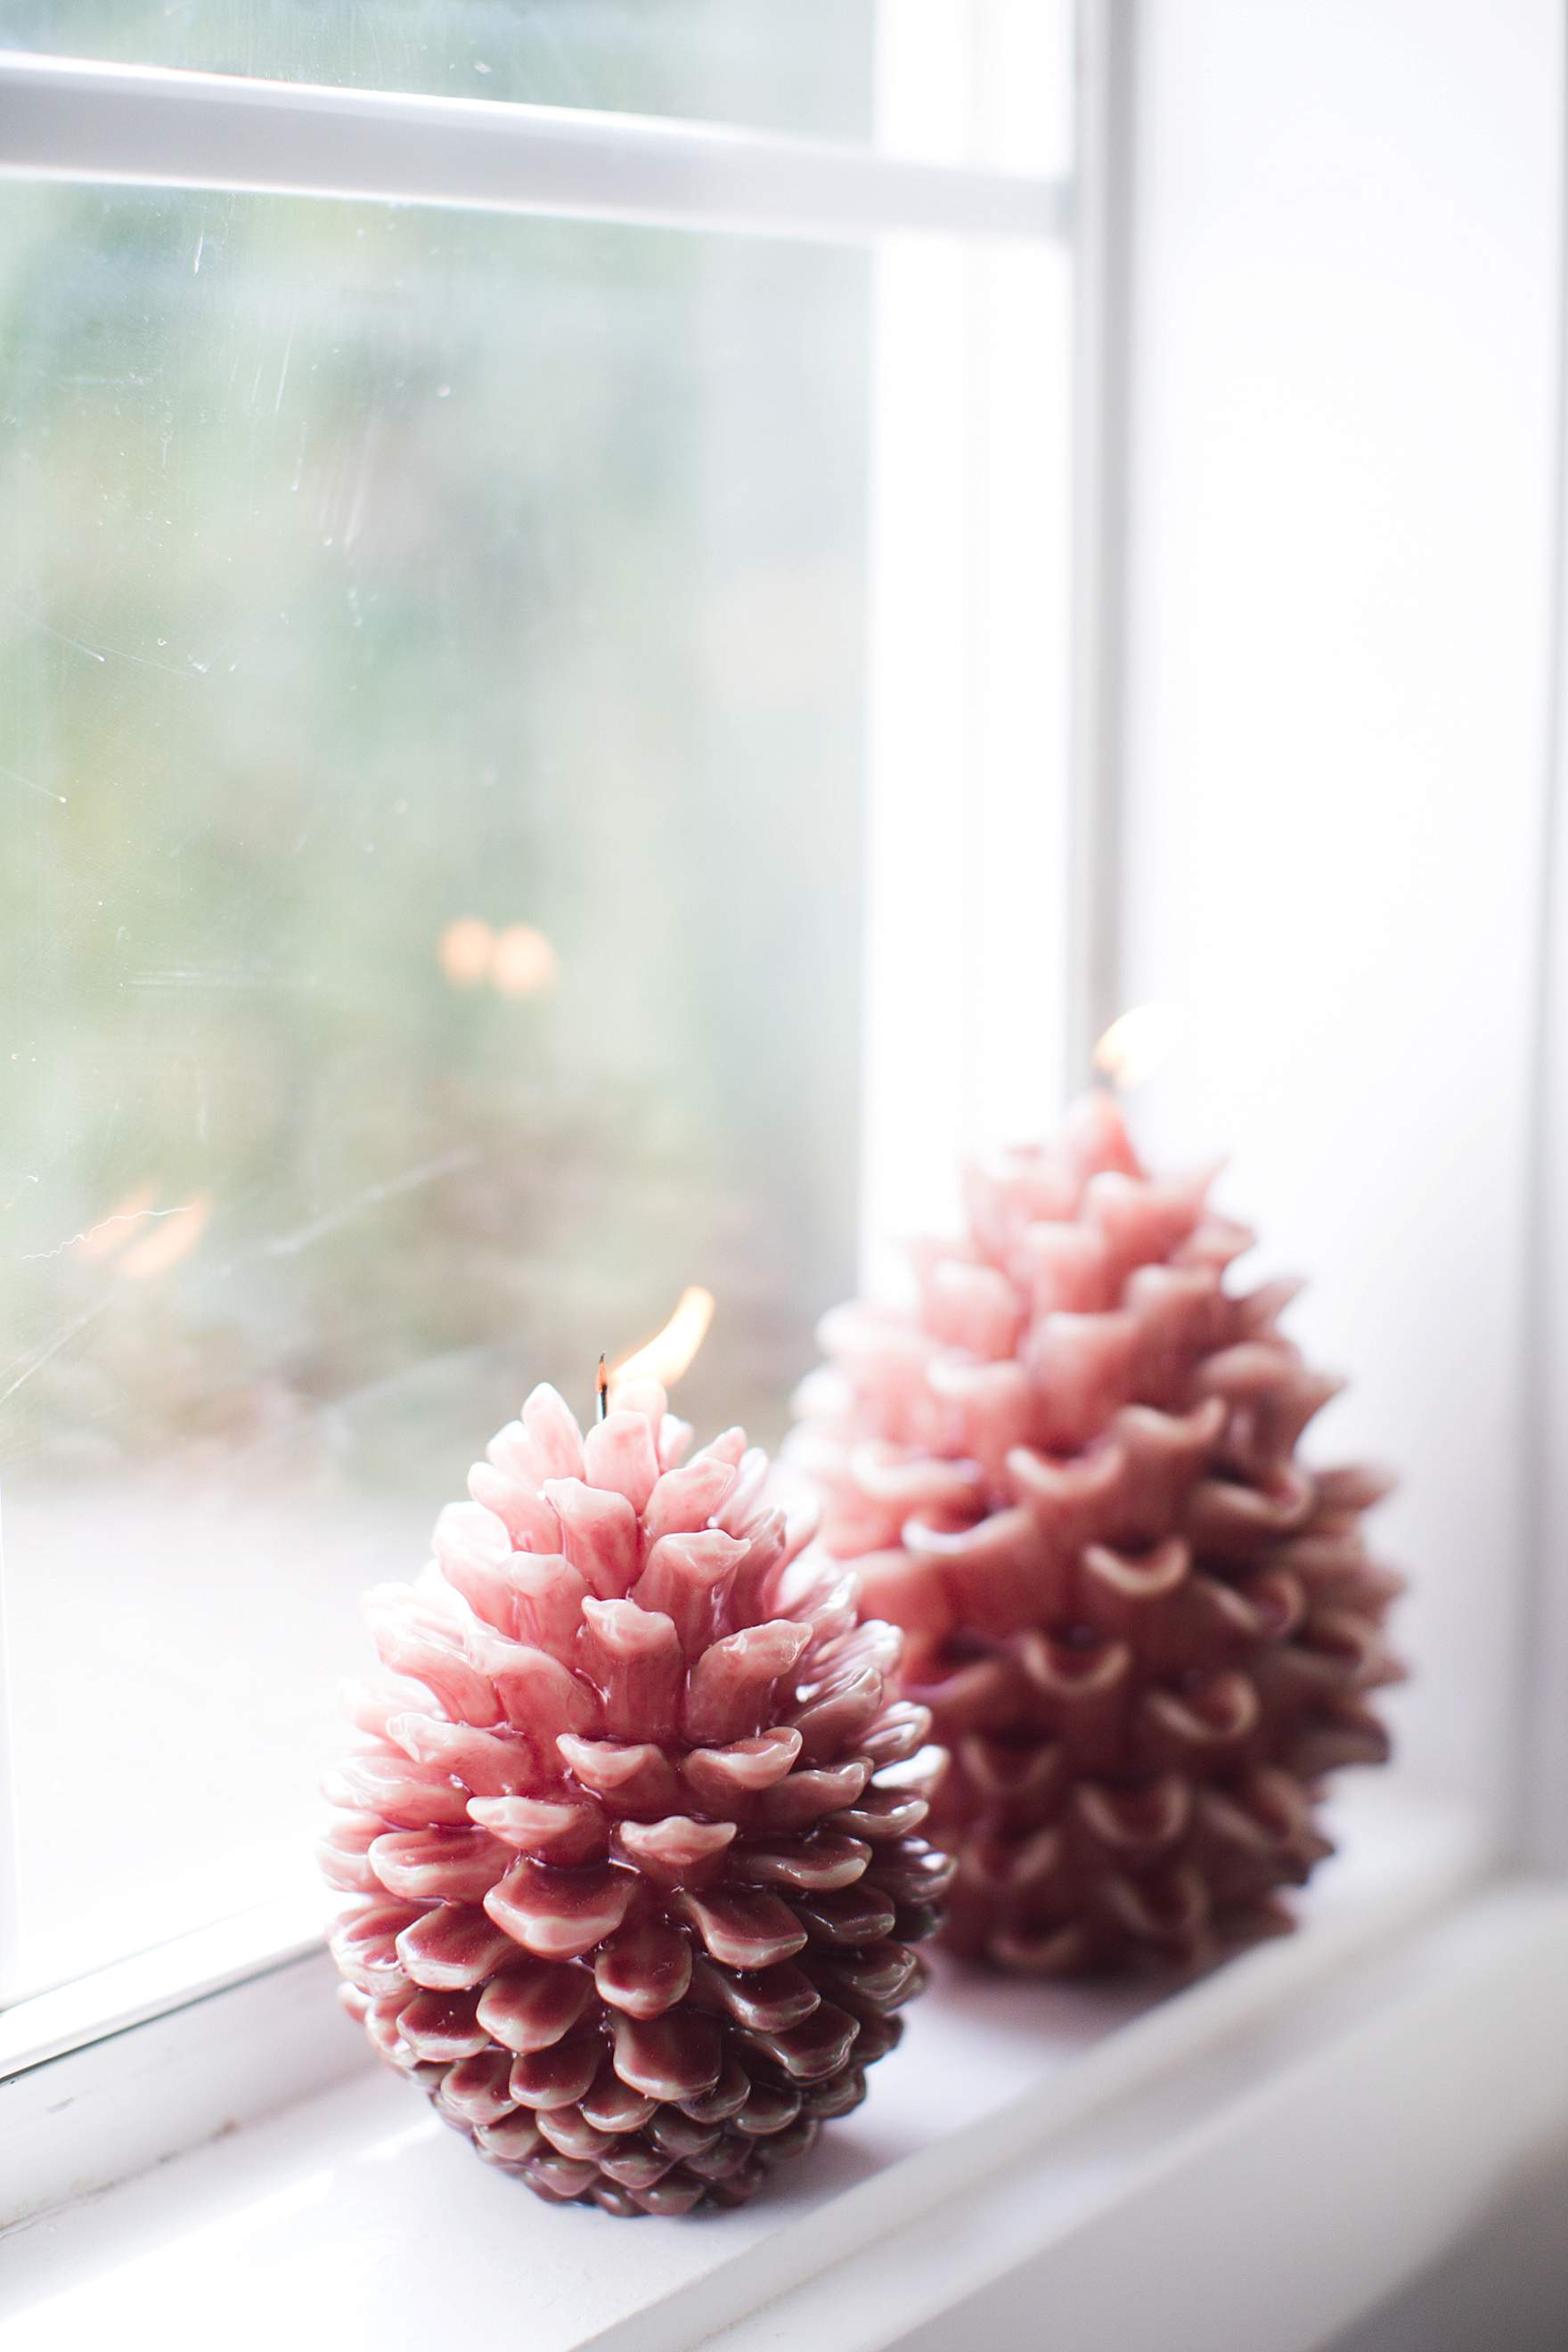 lit pinecones on a windowsill winter shot